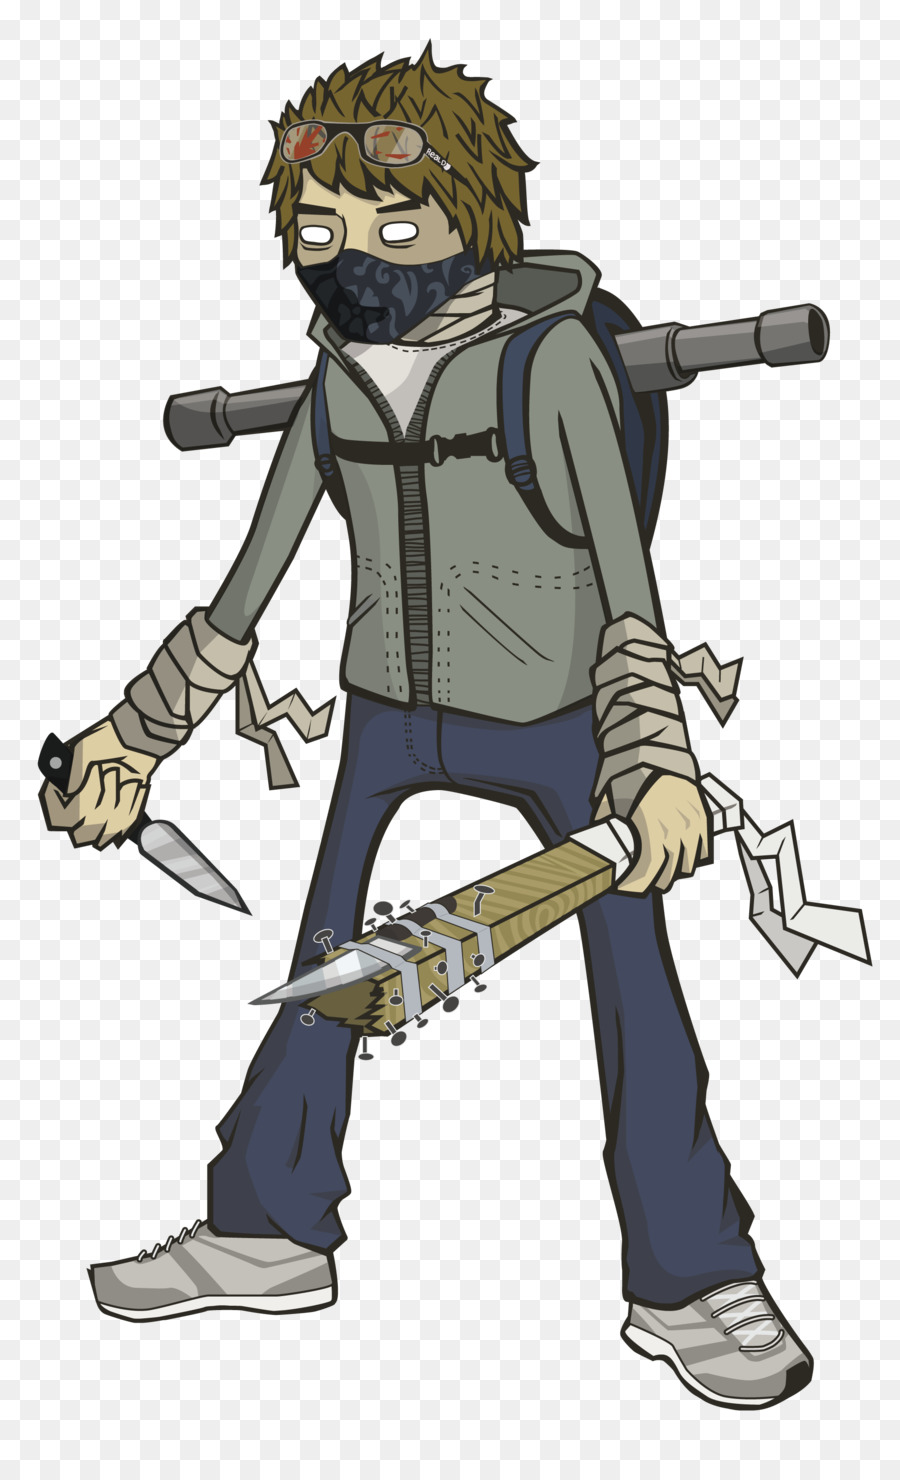 Zombie Drawing Illustration Transparent Png Image Clipart Free